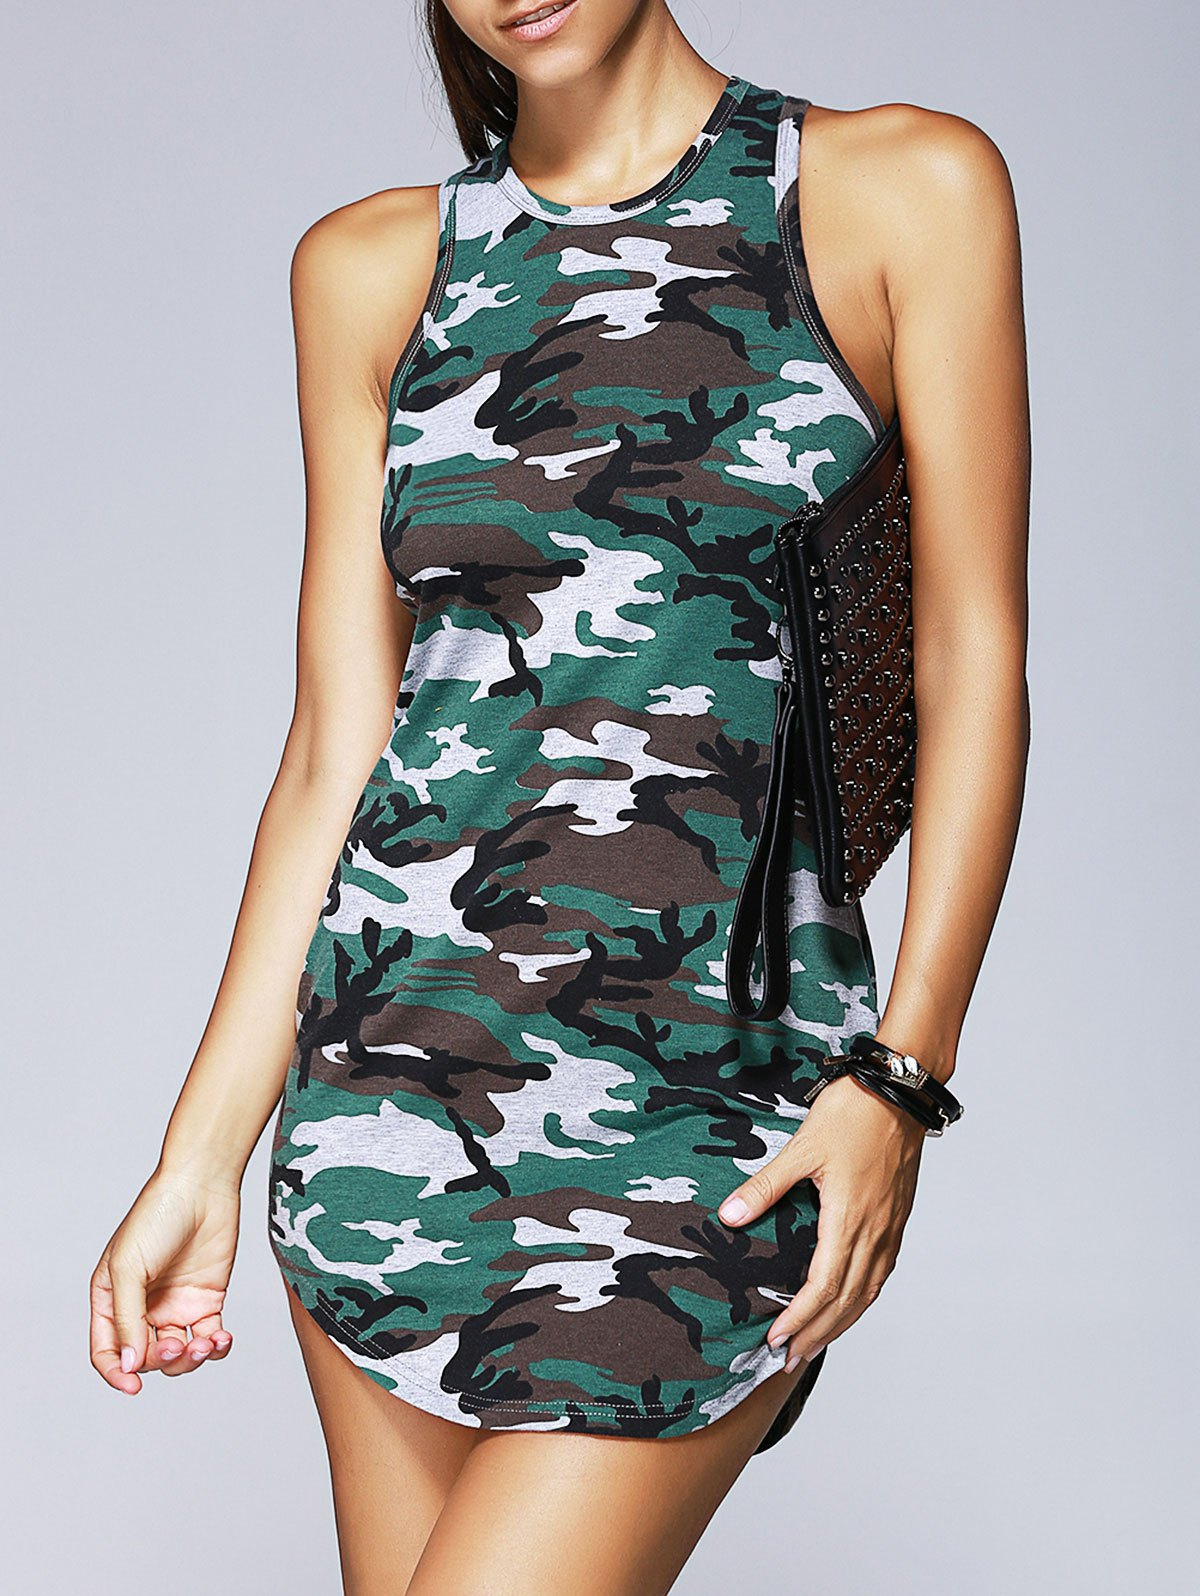 Fashionable Woman's Round Collar Camouflage Printing Tight Dress